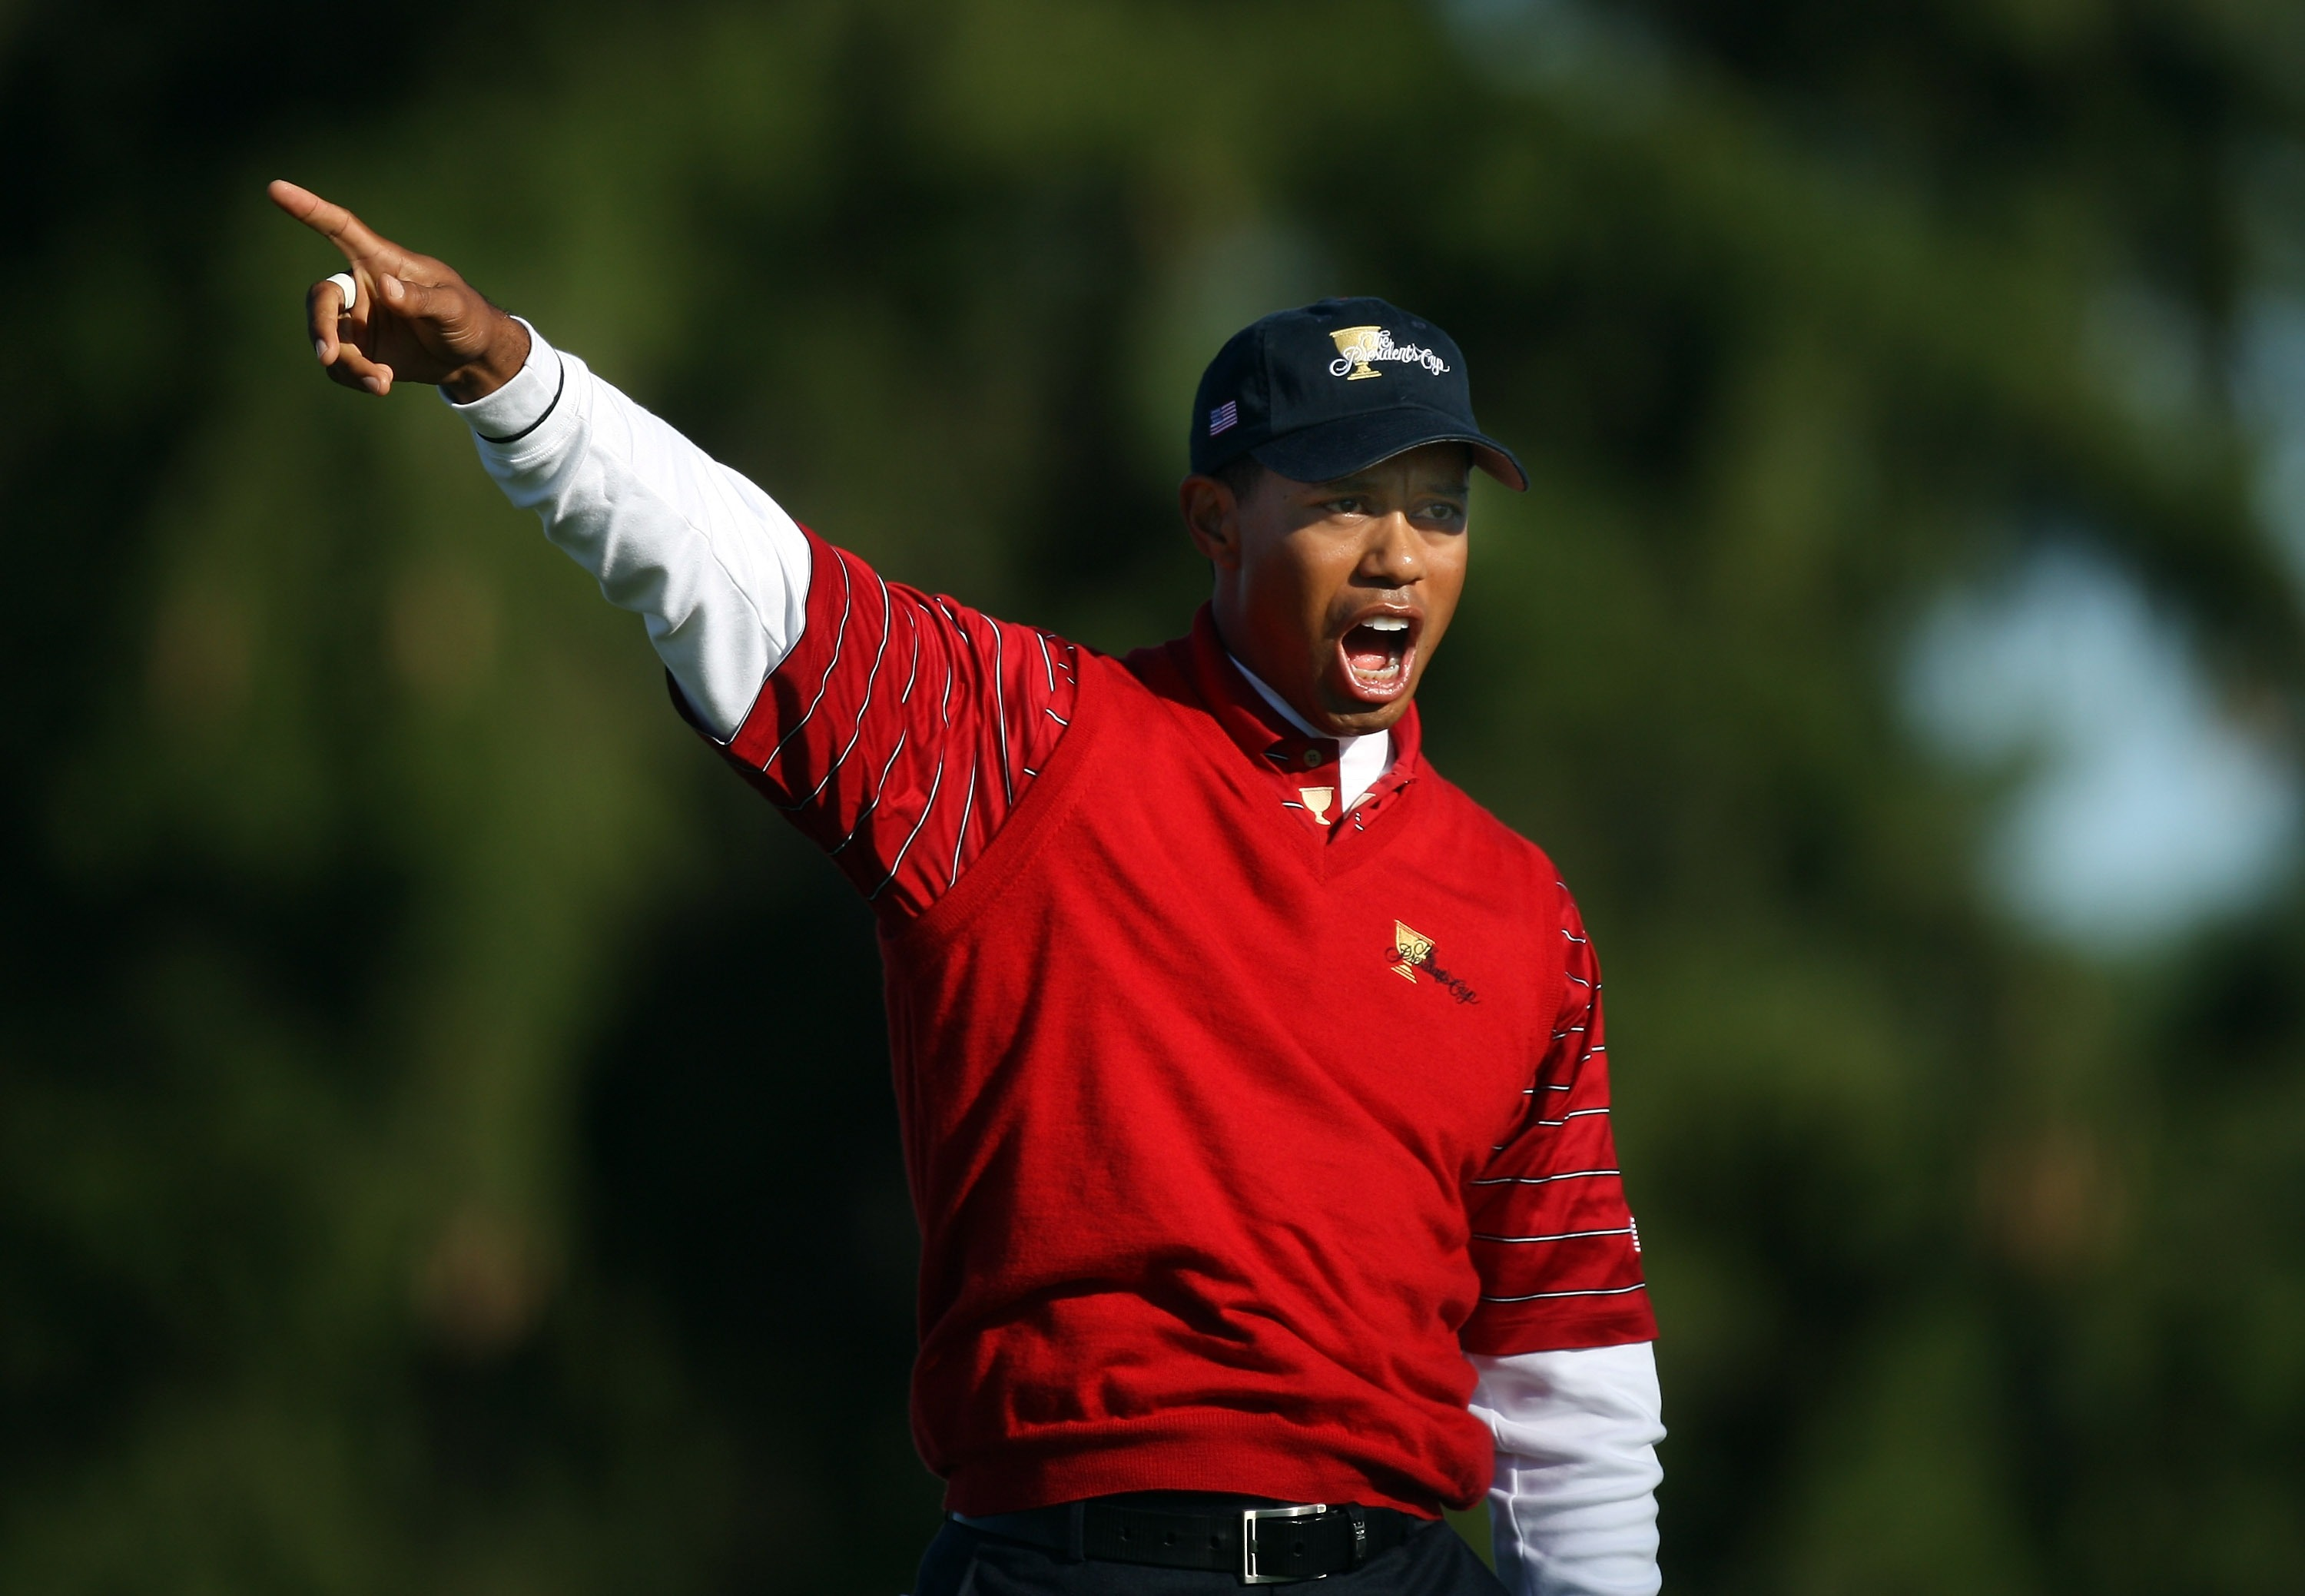 MONTREAL - SEPTEMBER 29:  Tiger Woods of the U.S. Team shouts 'fore' as he hits his tee shot to the ninth hole during the third day morning foursome matches at the Presidents Cup at Royal Montreal Golf Club September 29, 2007 in Montreal, Quebec, Canada.